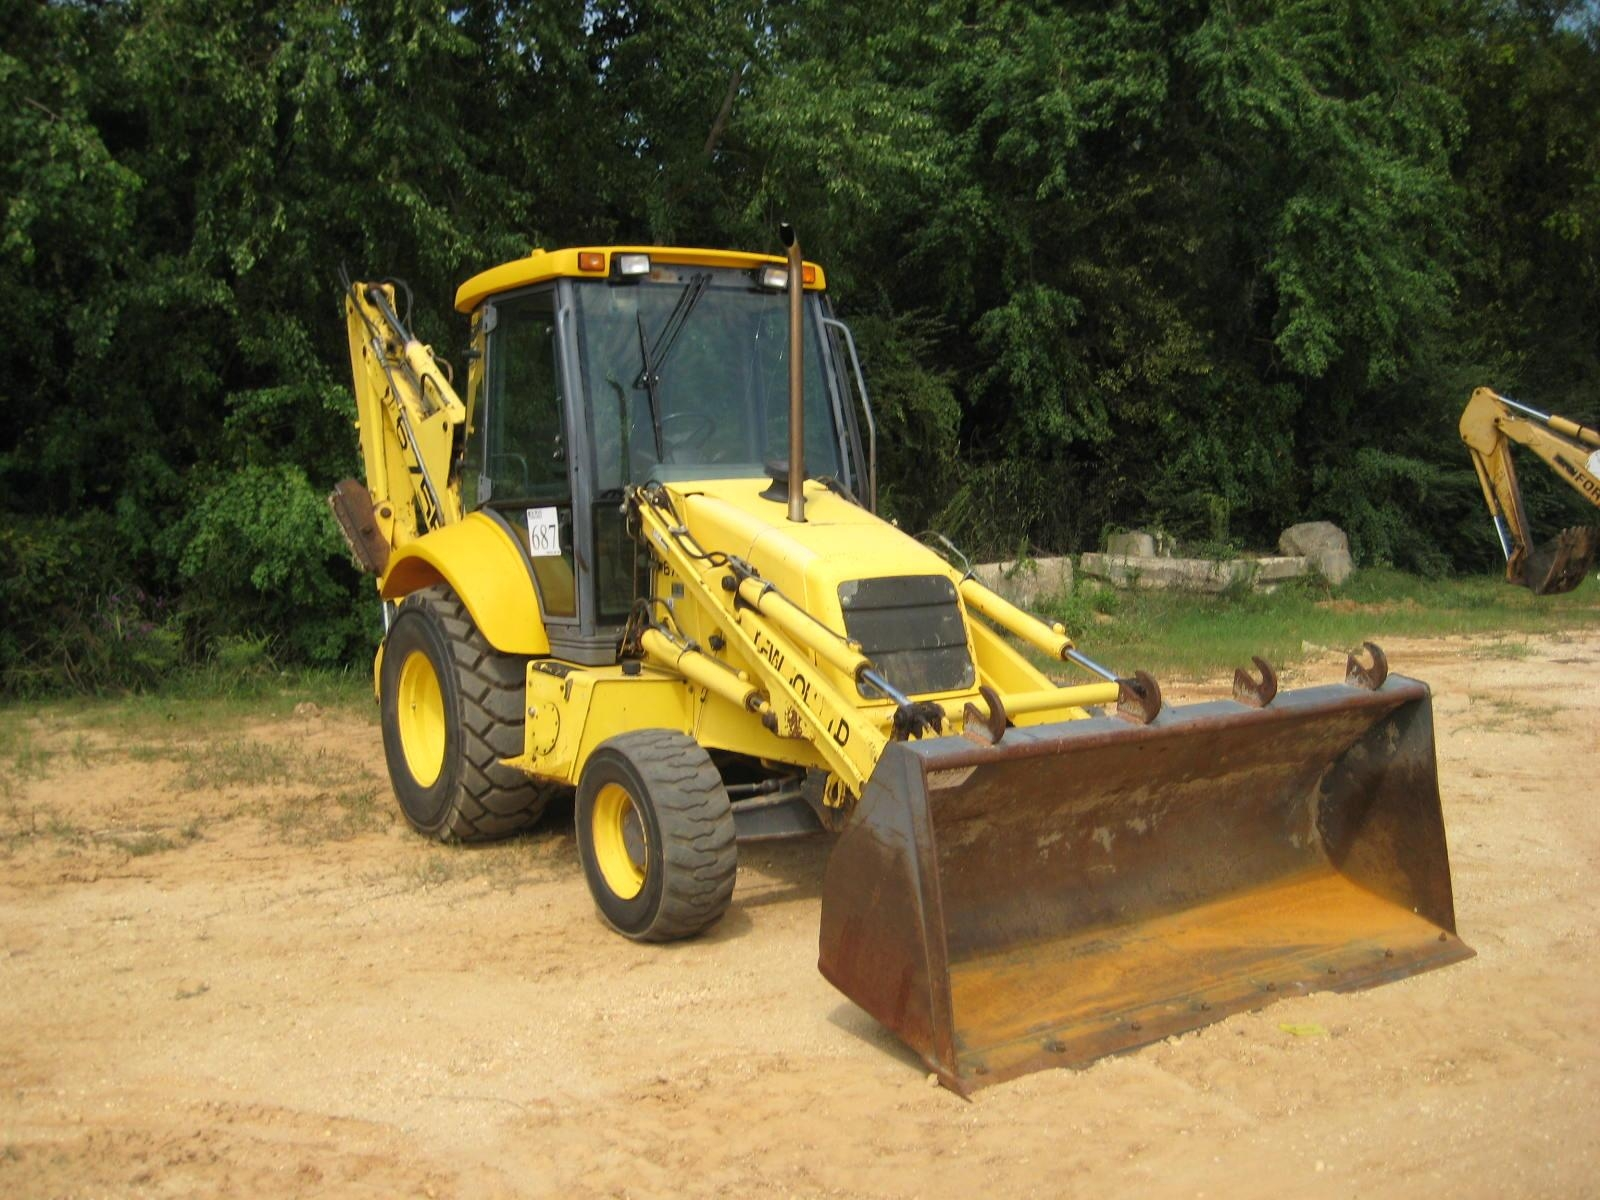 Ford 555e Wiring Diagram | Wiring Liry New Holland E Alternator Wiring Diagram on new holland construction equipment, new holland parts diagrams, new holland backhoe, new holland l185 wiring diagrams, new holland schematics, new holland ford,